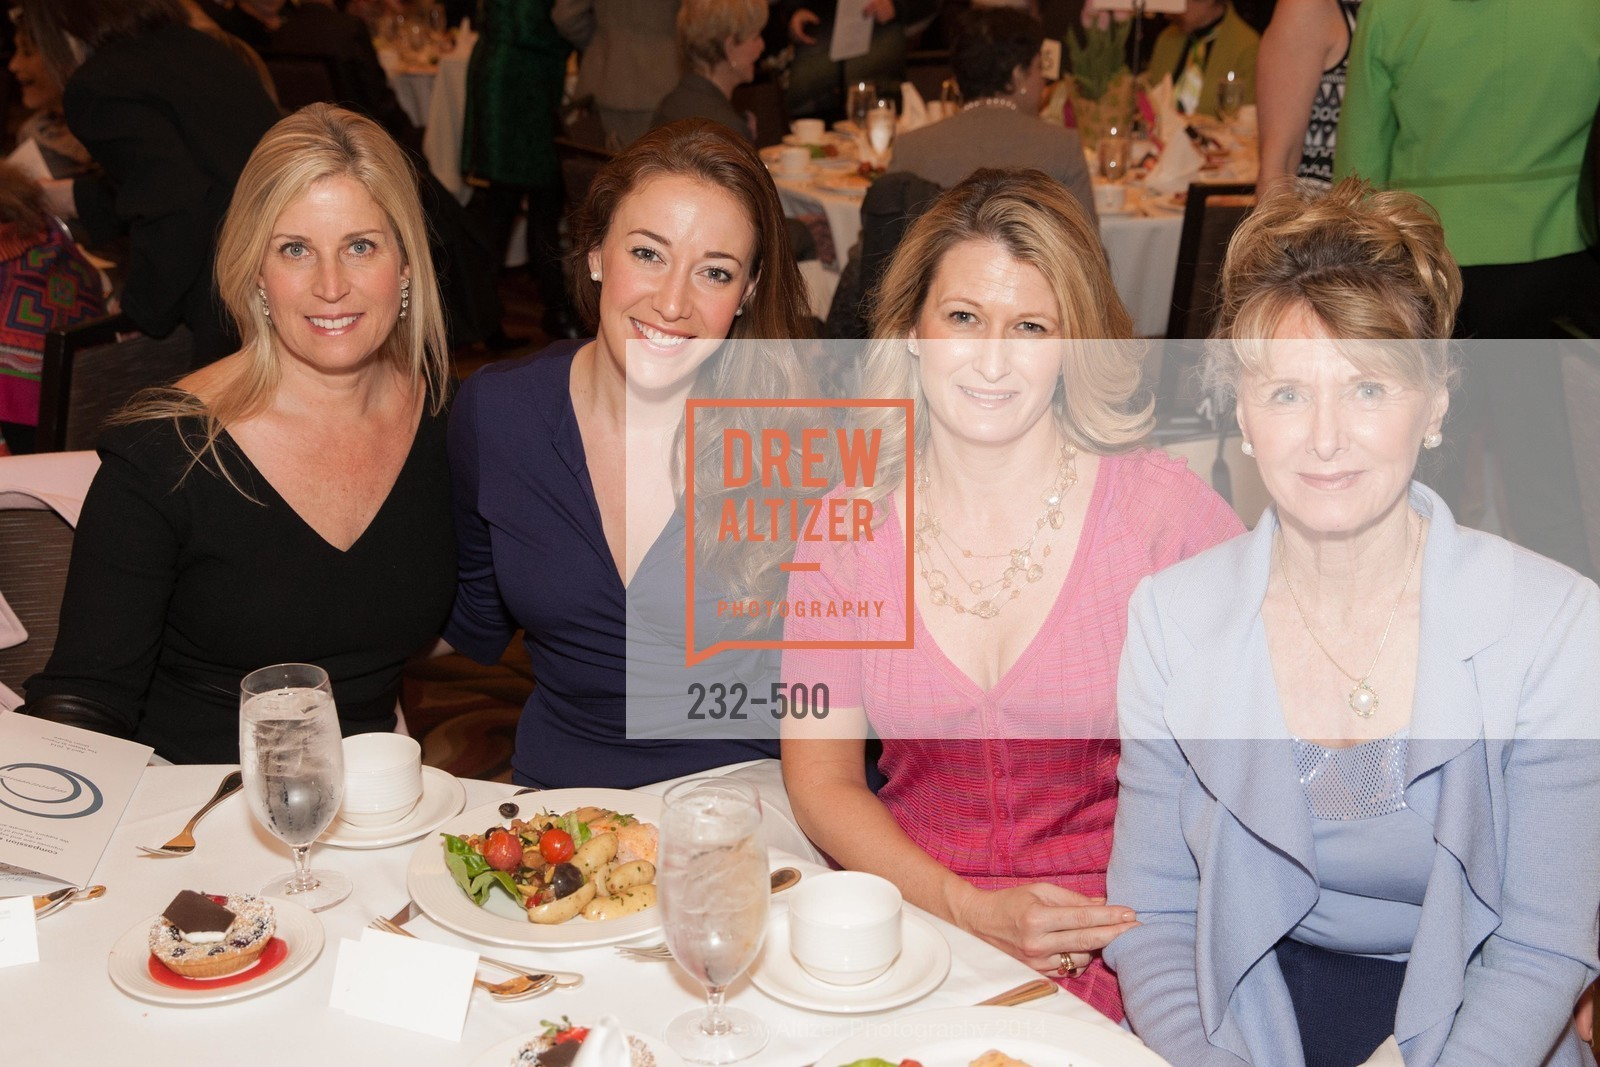 Jane Inch, Schuyler Hudak, Nicole Bonar, Virginia Bonar, Compassion & Choices Luncheon, US. US, April 4th, 2014,Drew Altizer, Drew Altizer Photography, full-service agency, private events, San Francisco photographer, photographer california